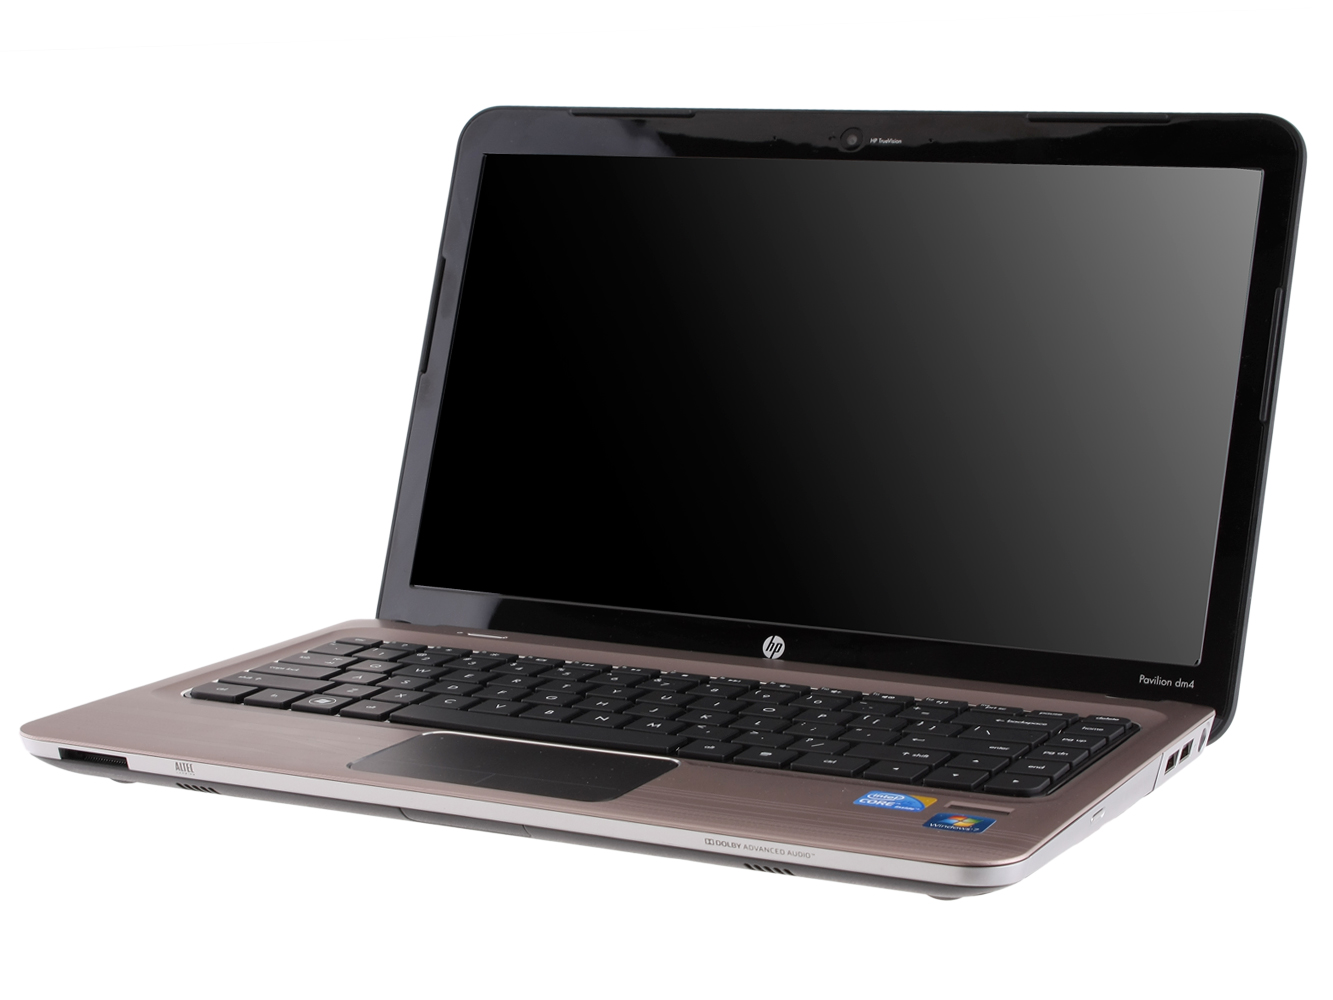 HP Pavilion DM4: Review, Features and Price ~ Top Laptop